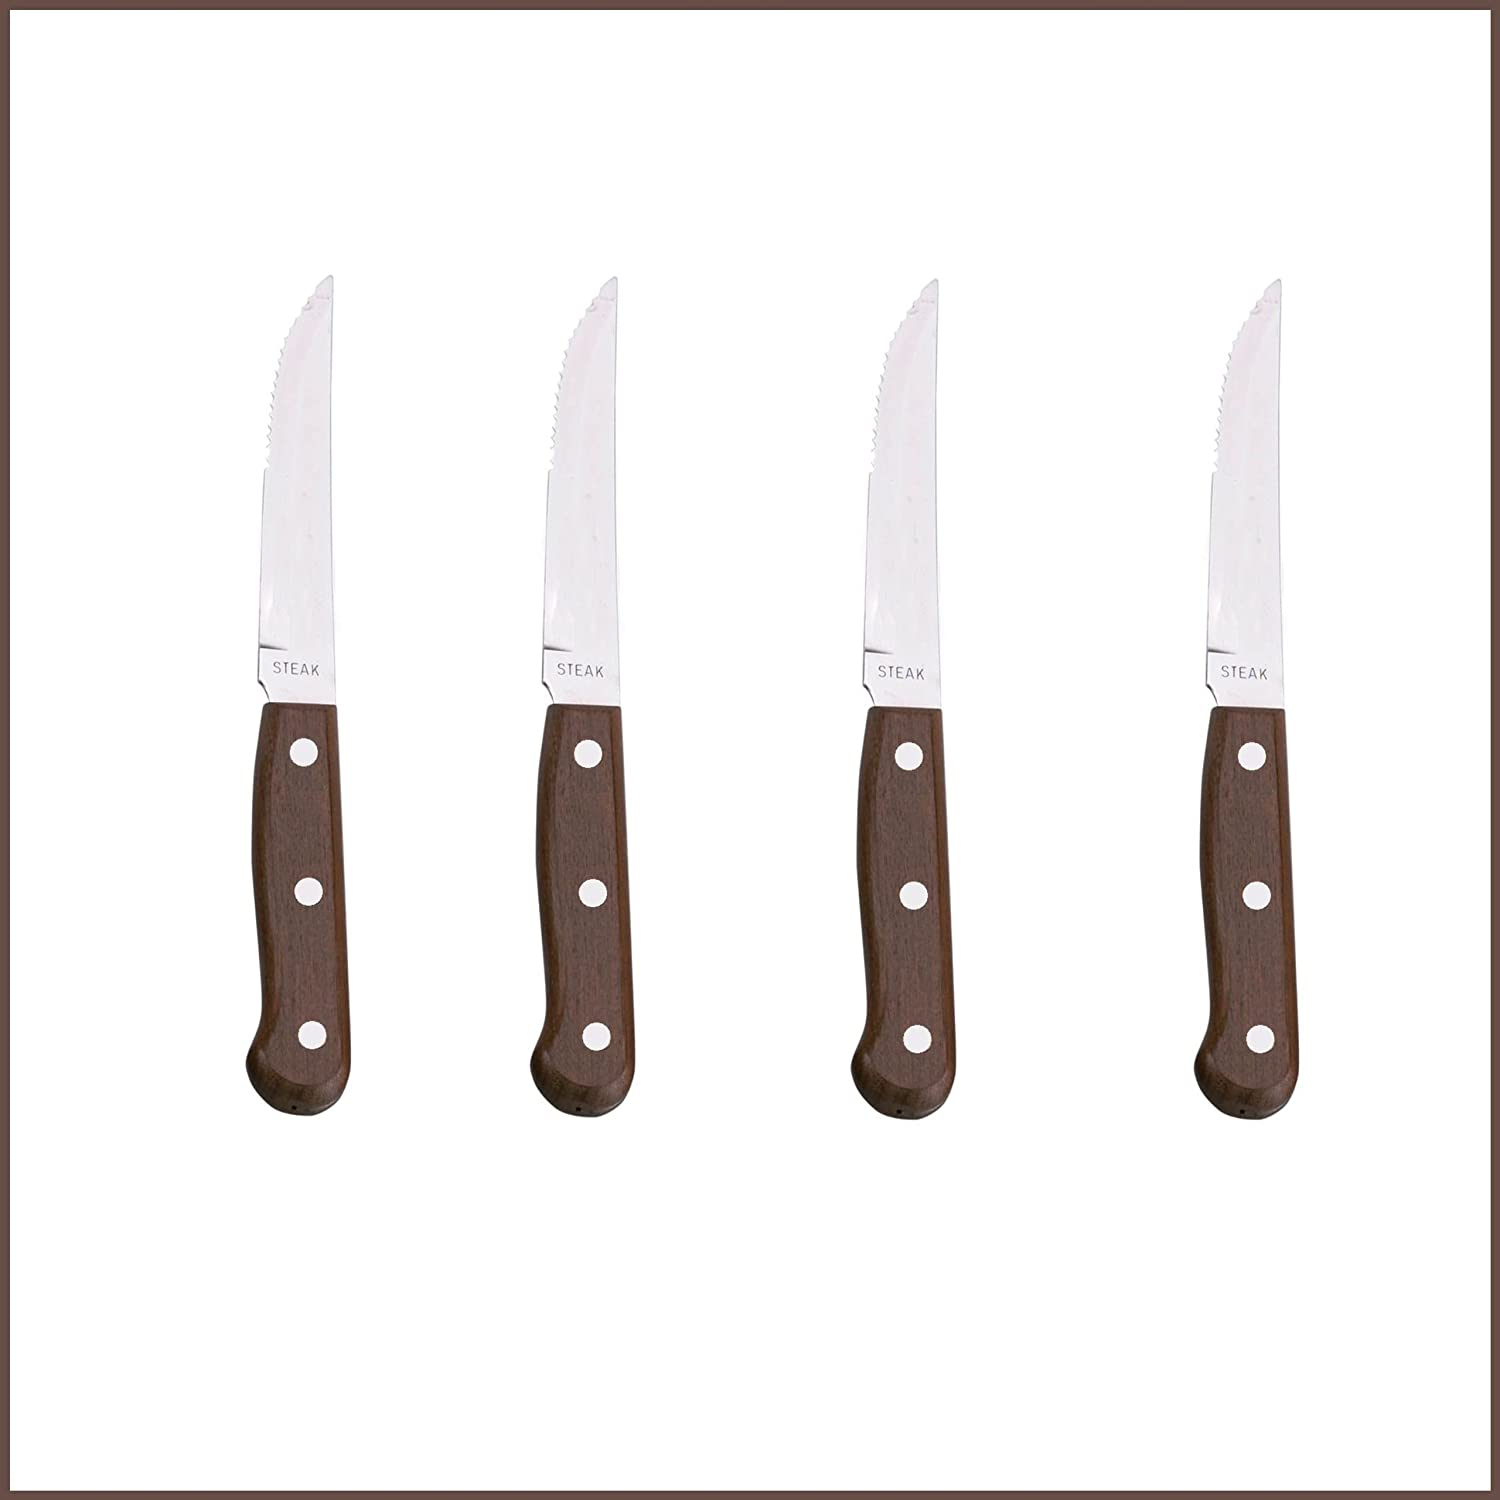 FOUR Restaurant Quality Ultra Sharp Steak Knives with Dark Pear Wood Handles and Stainless Steel Blades & FREE UK Delivery